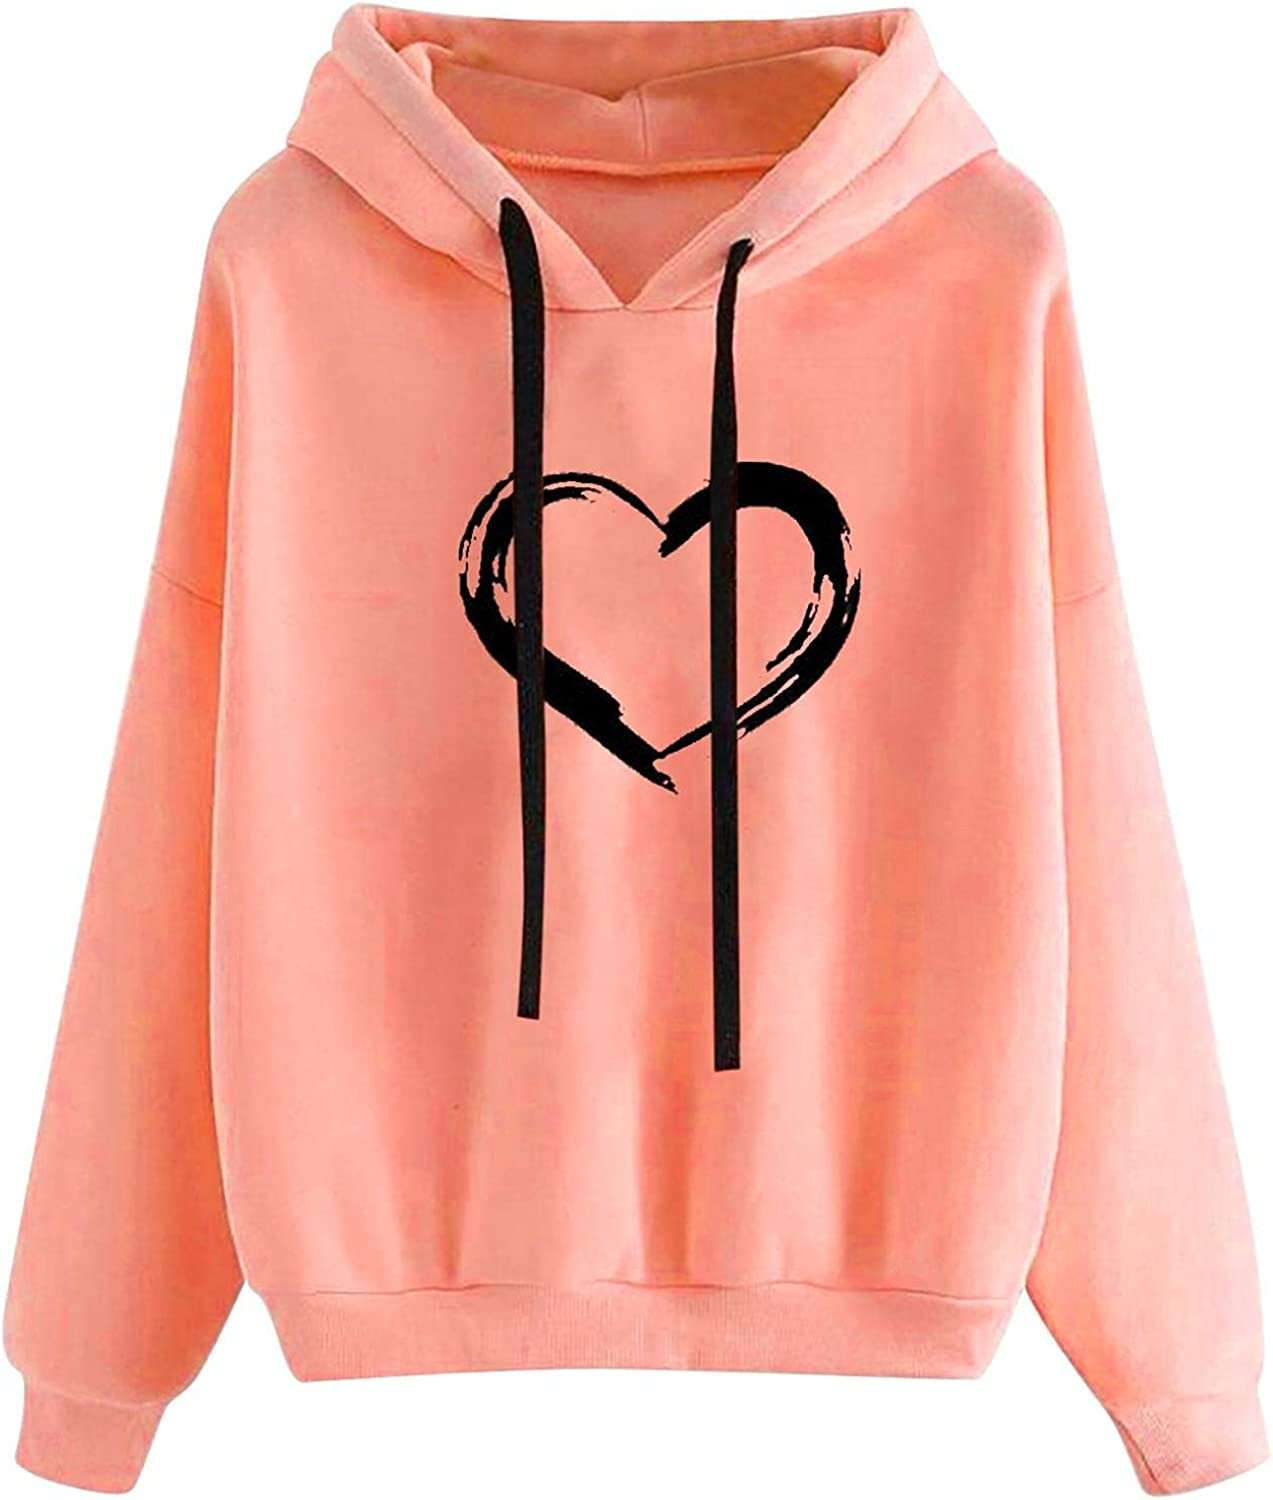 Women's Autumn Love Heart Hoodie Sweatshirt Solid Color Soft Plus Size Tops Cute Long Sleeved Pullover